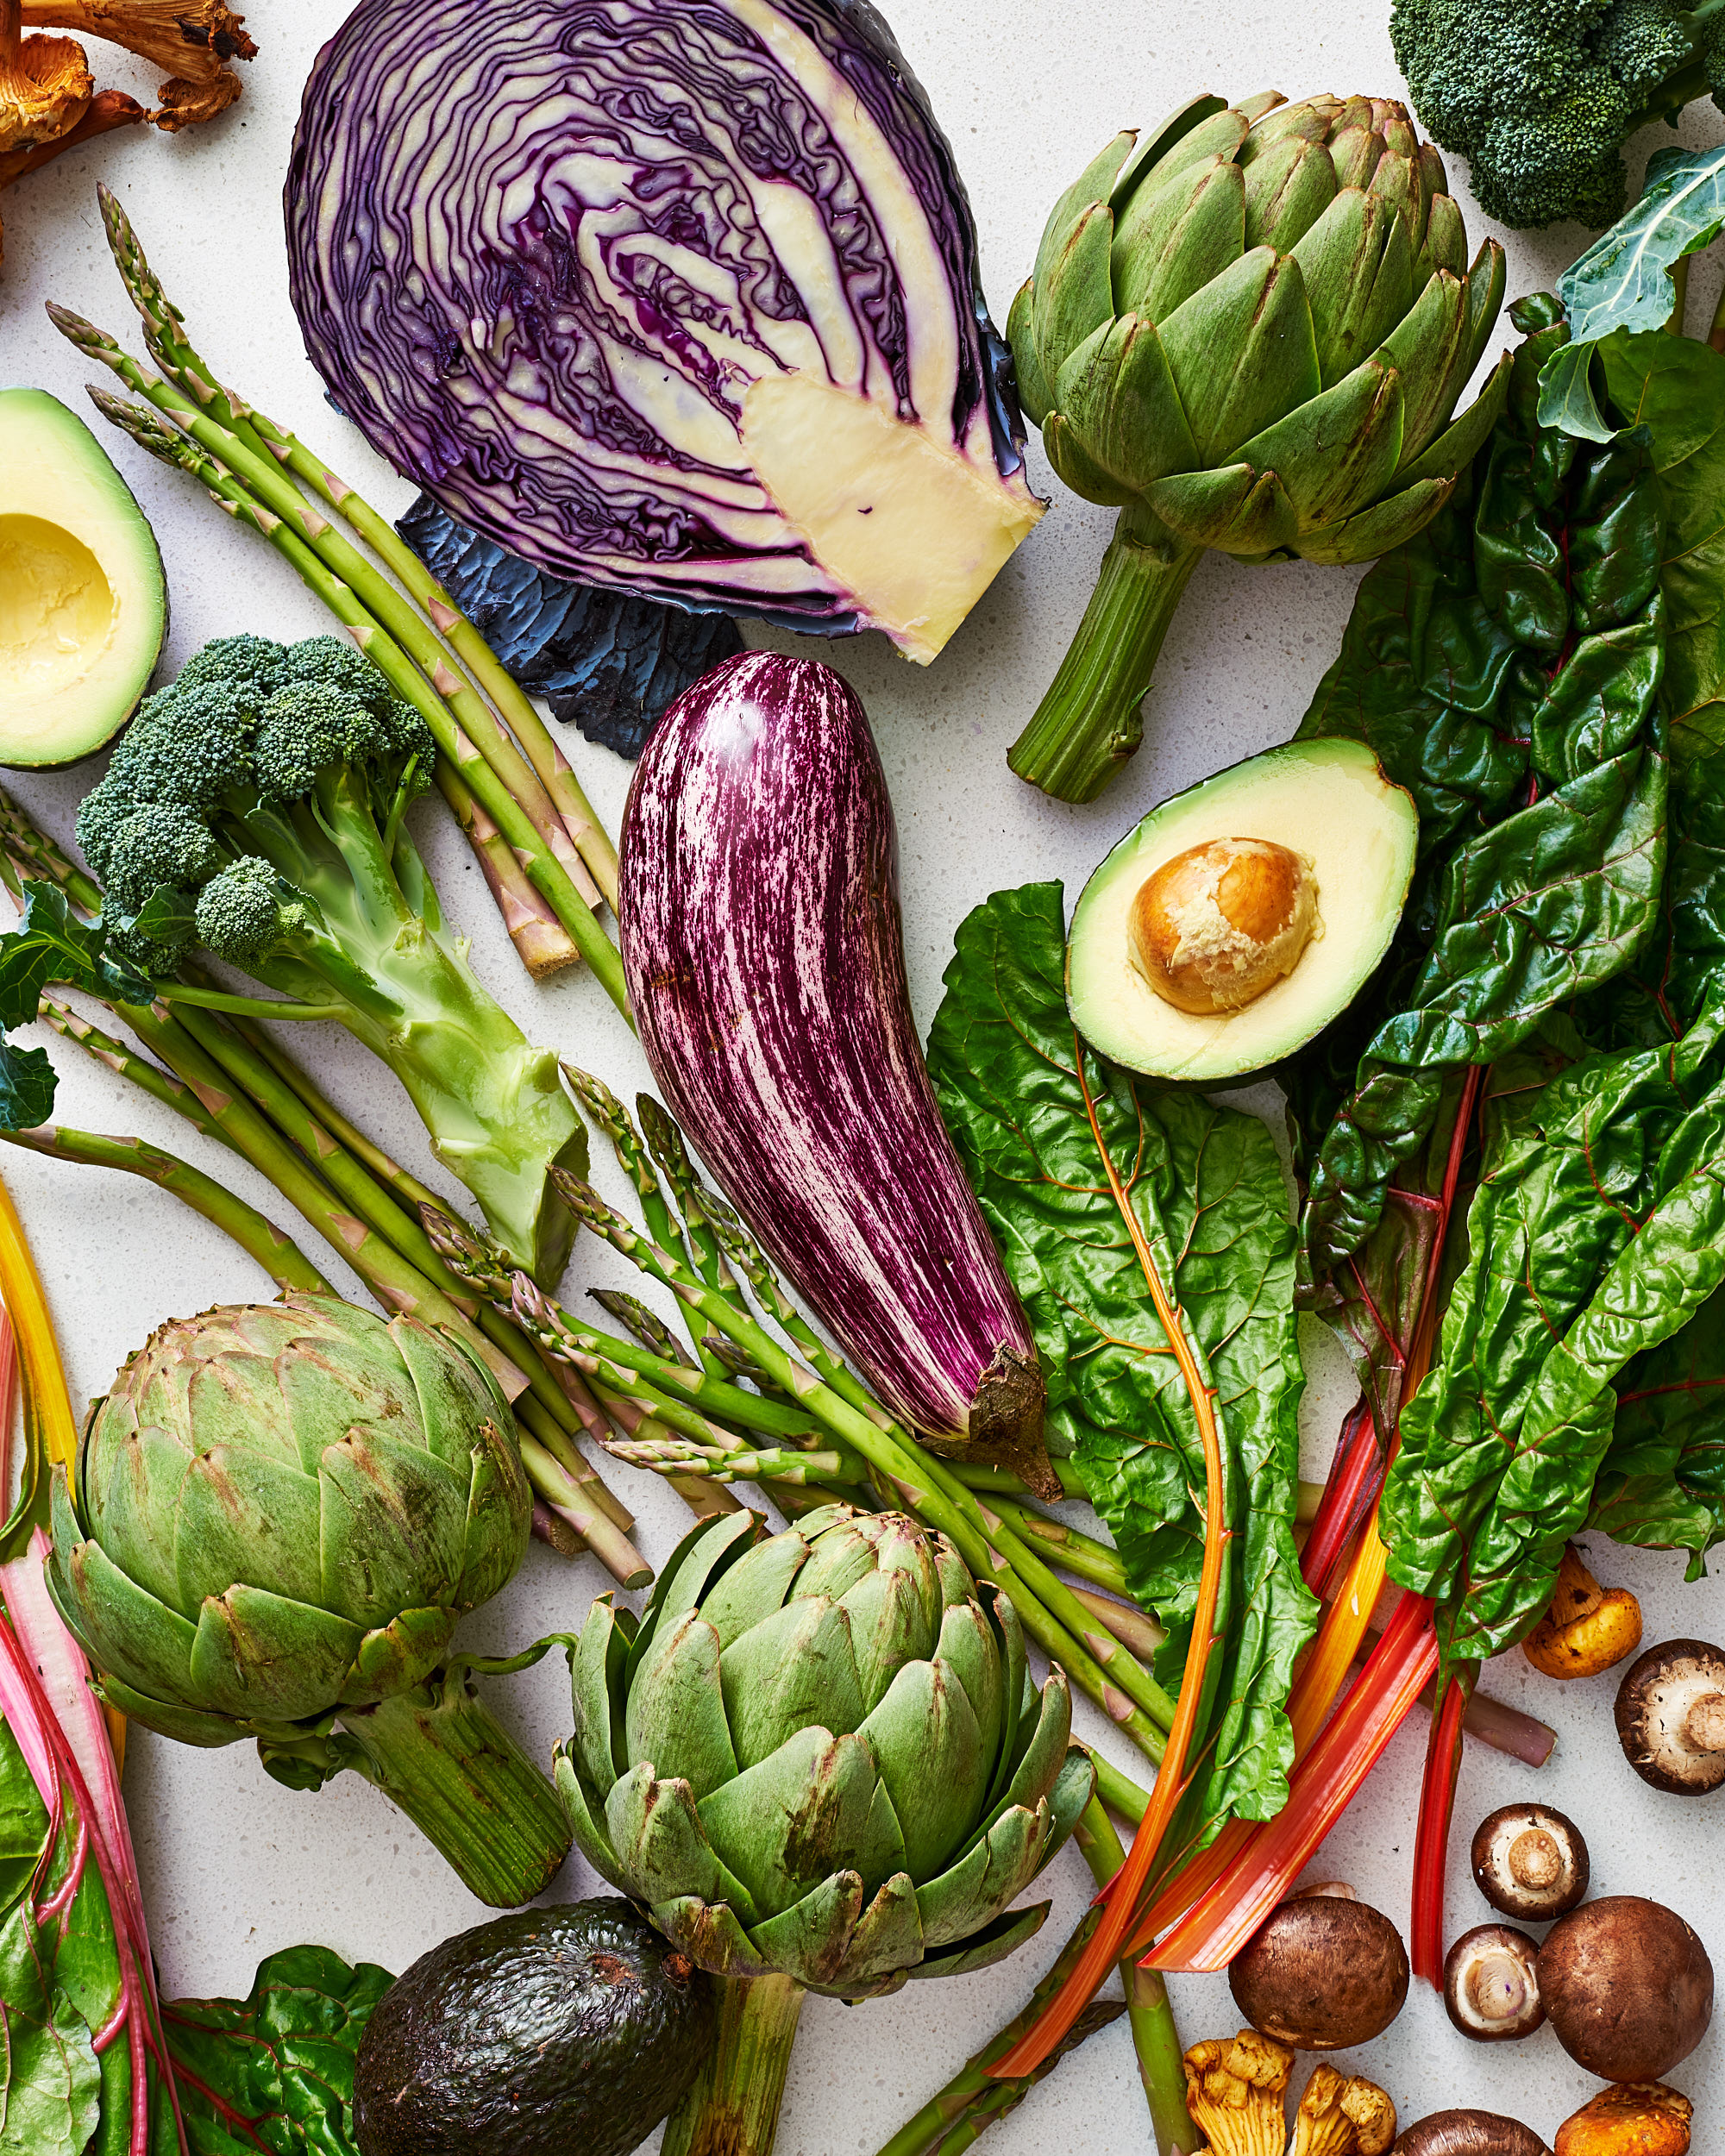 10 Vegetables That Are Lower in Carbs than You Think